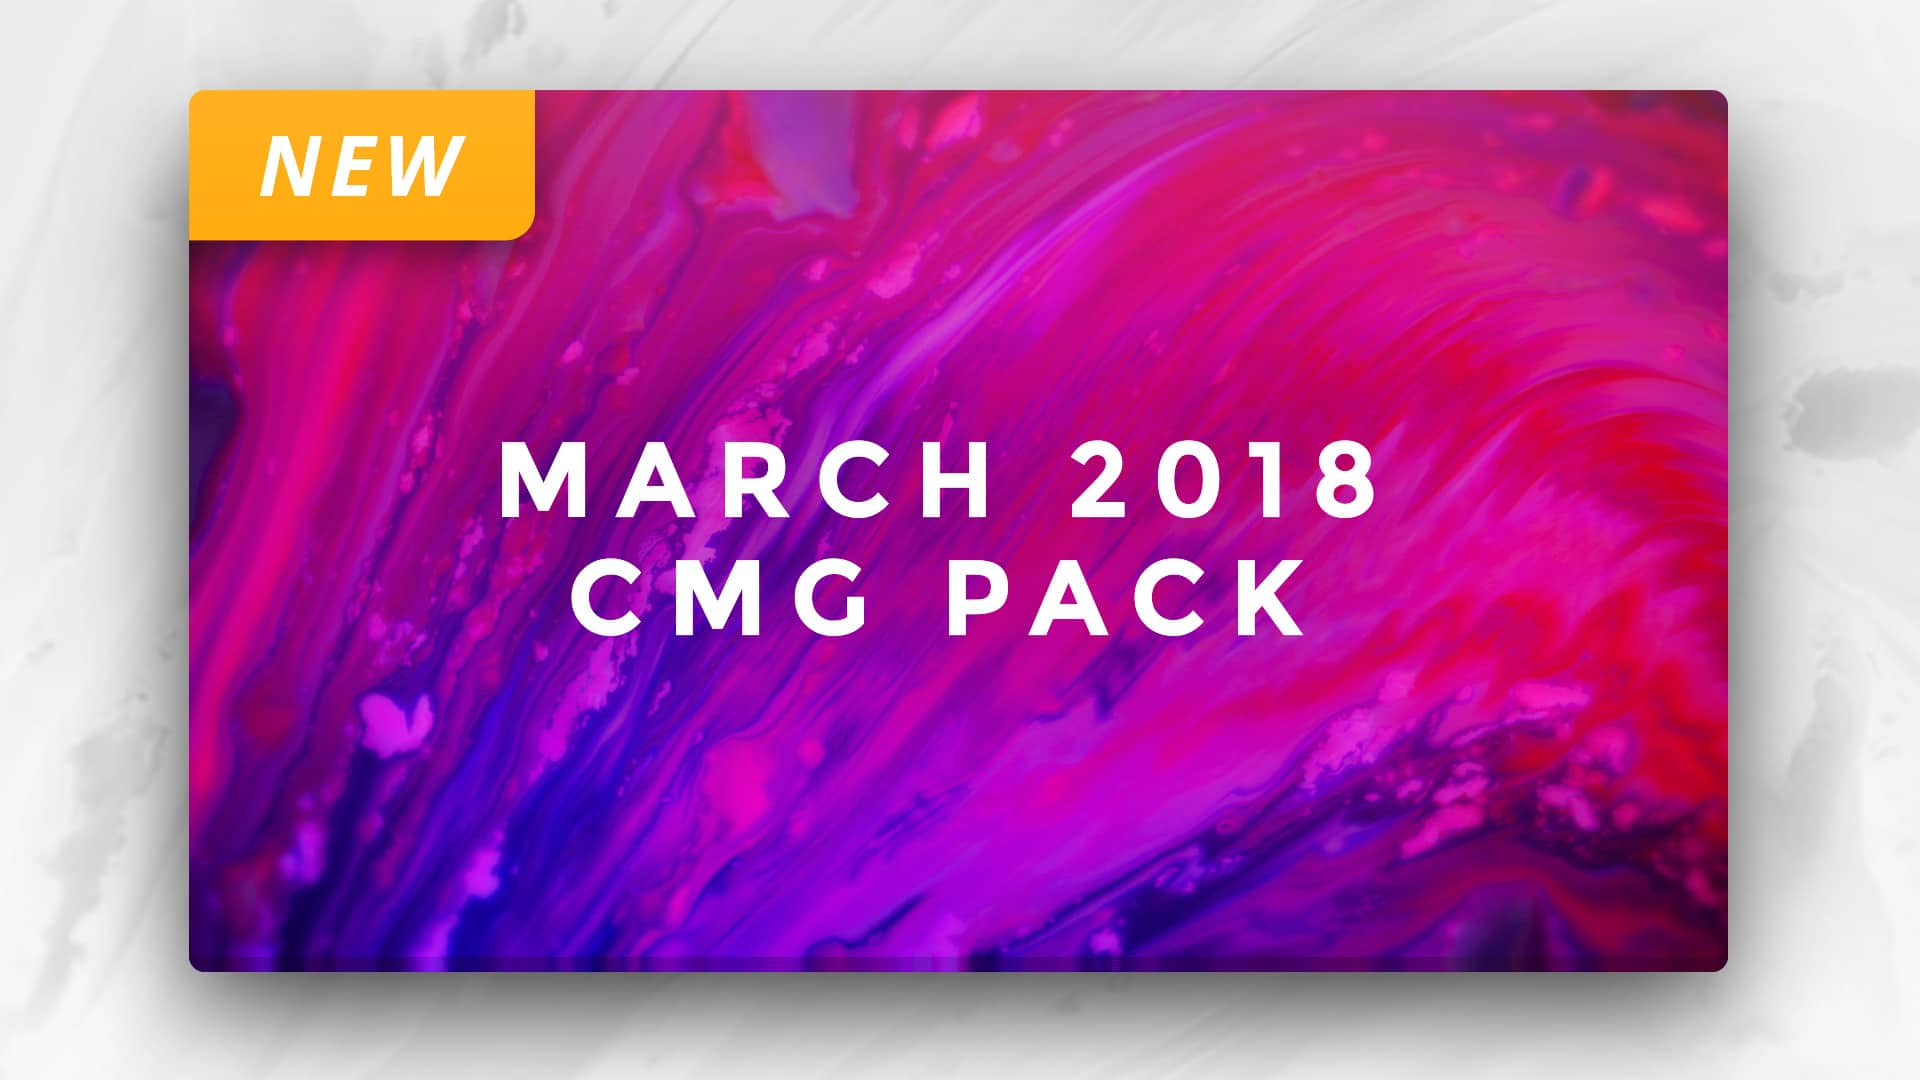 March 2018 CMG Pack